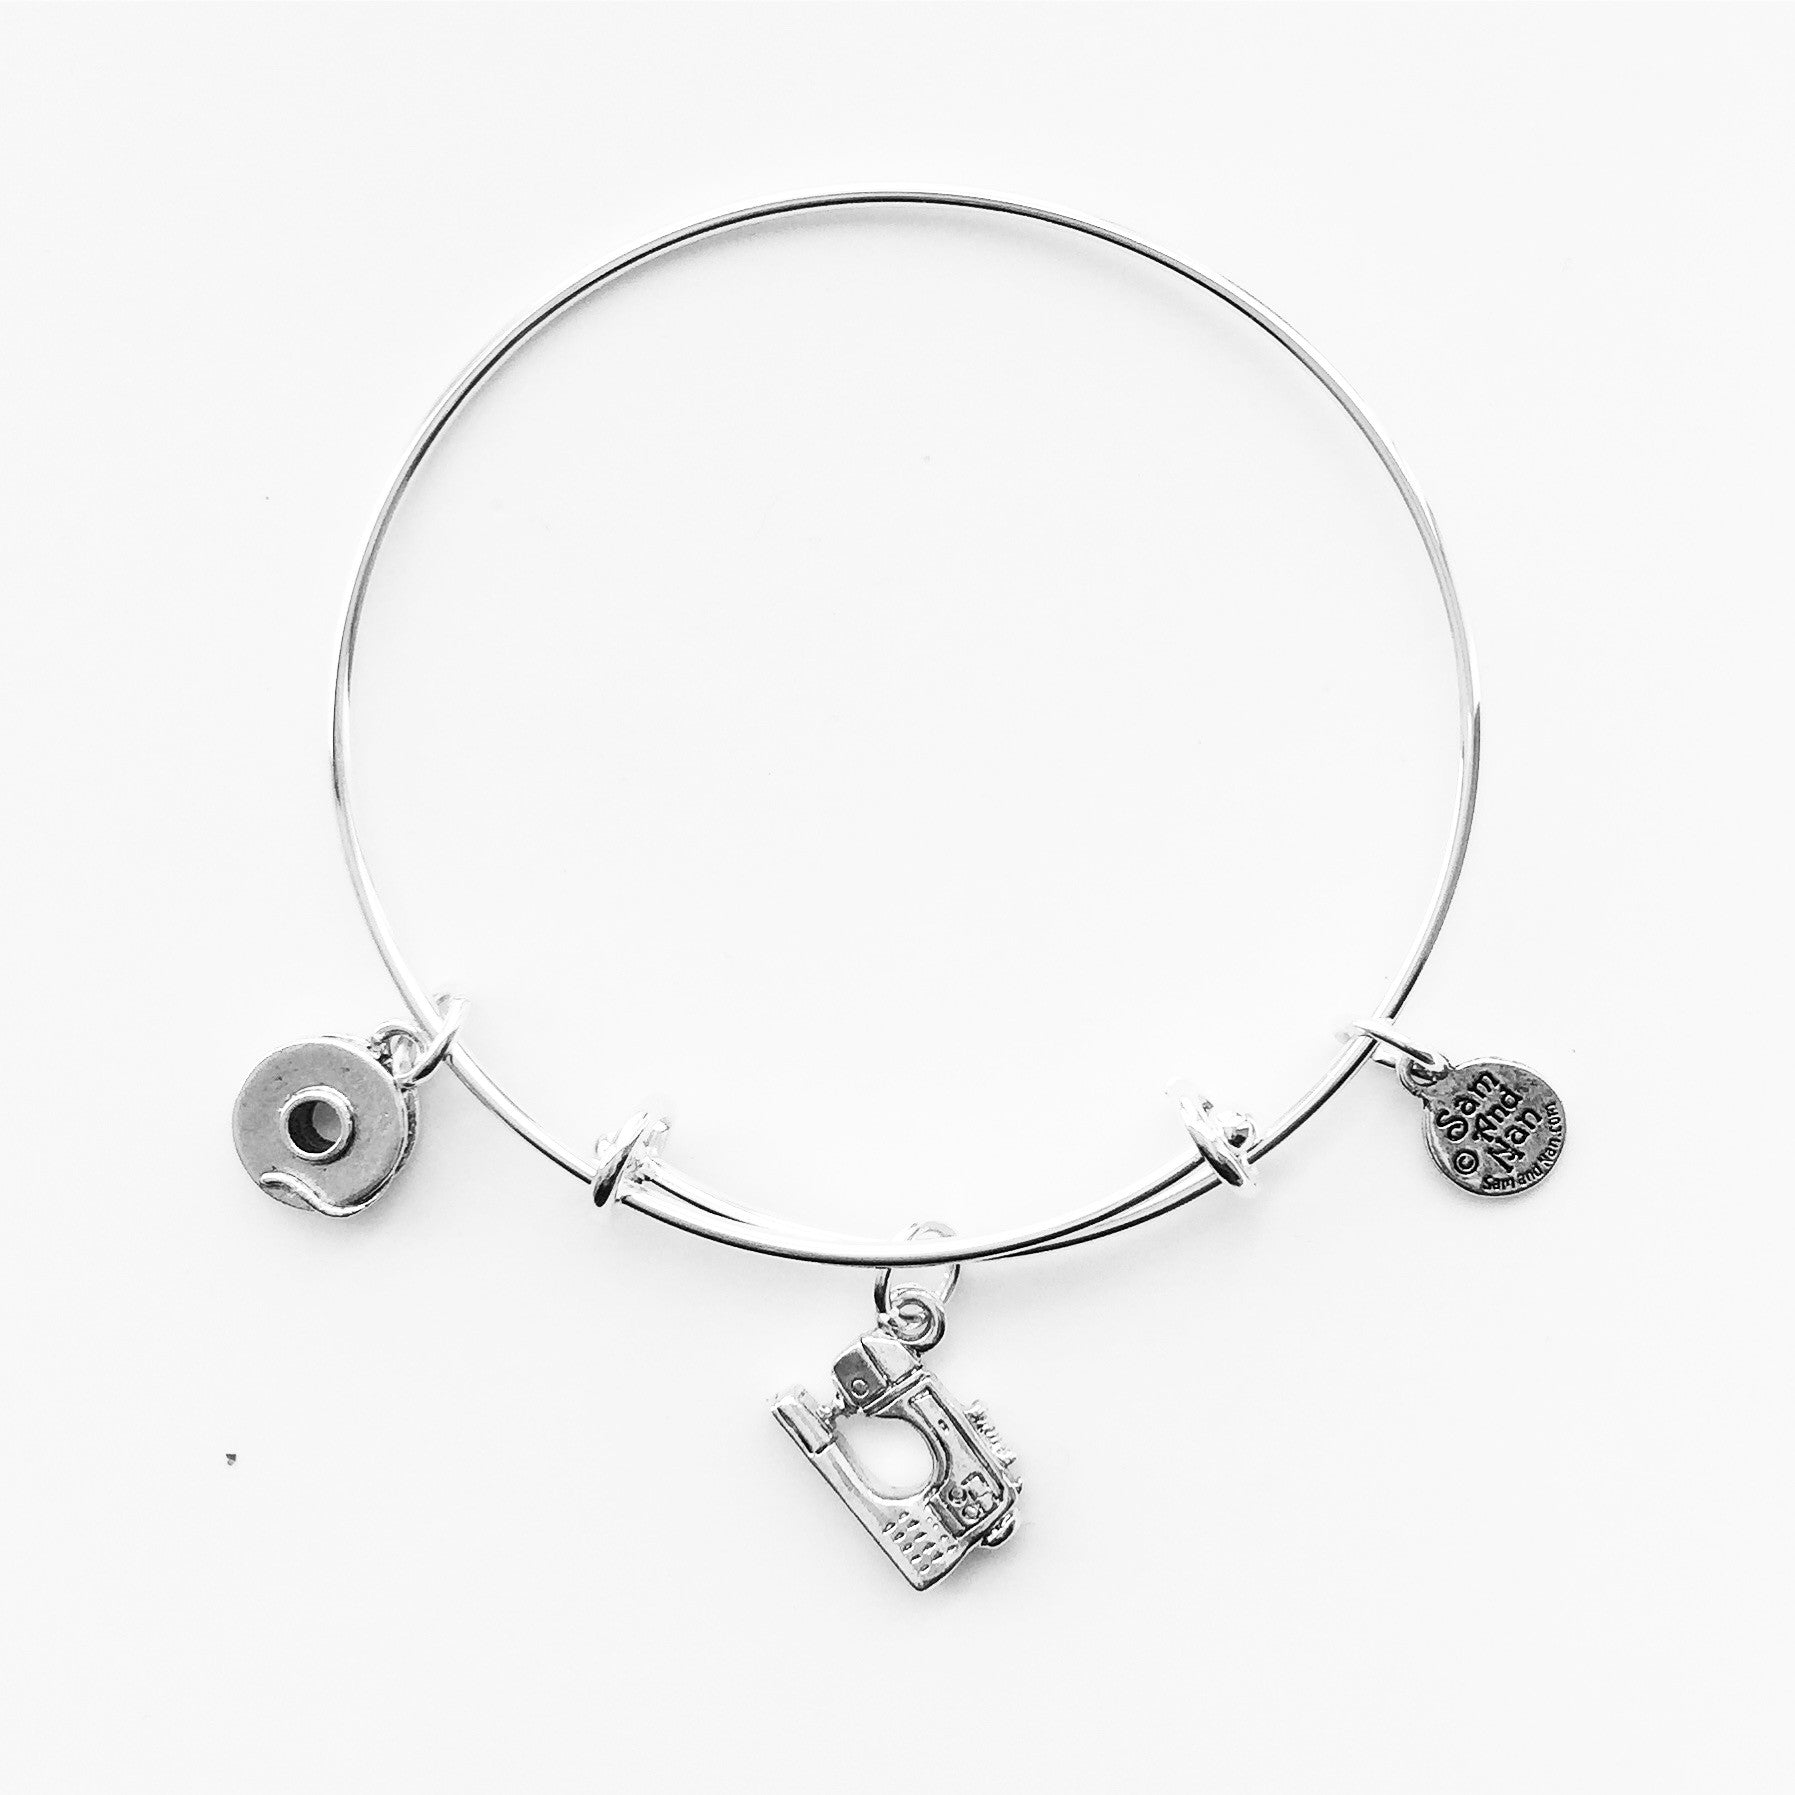 Sewing Machine Quilt Cutter Silver Charm Bangle Bracelet